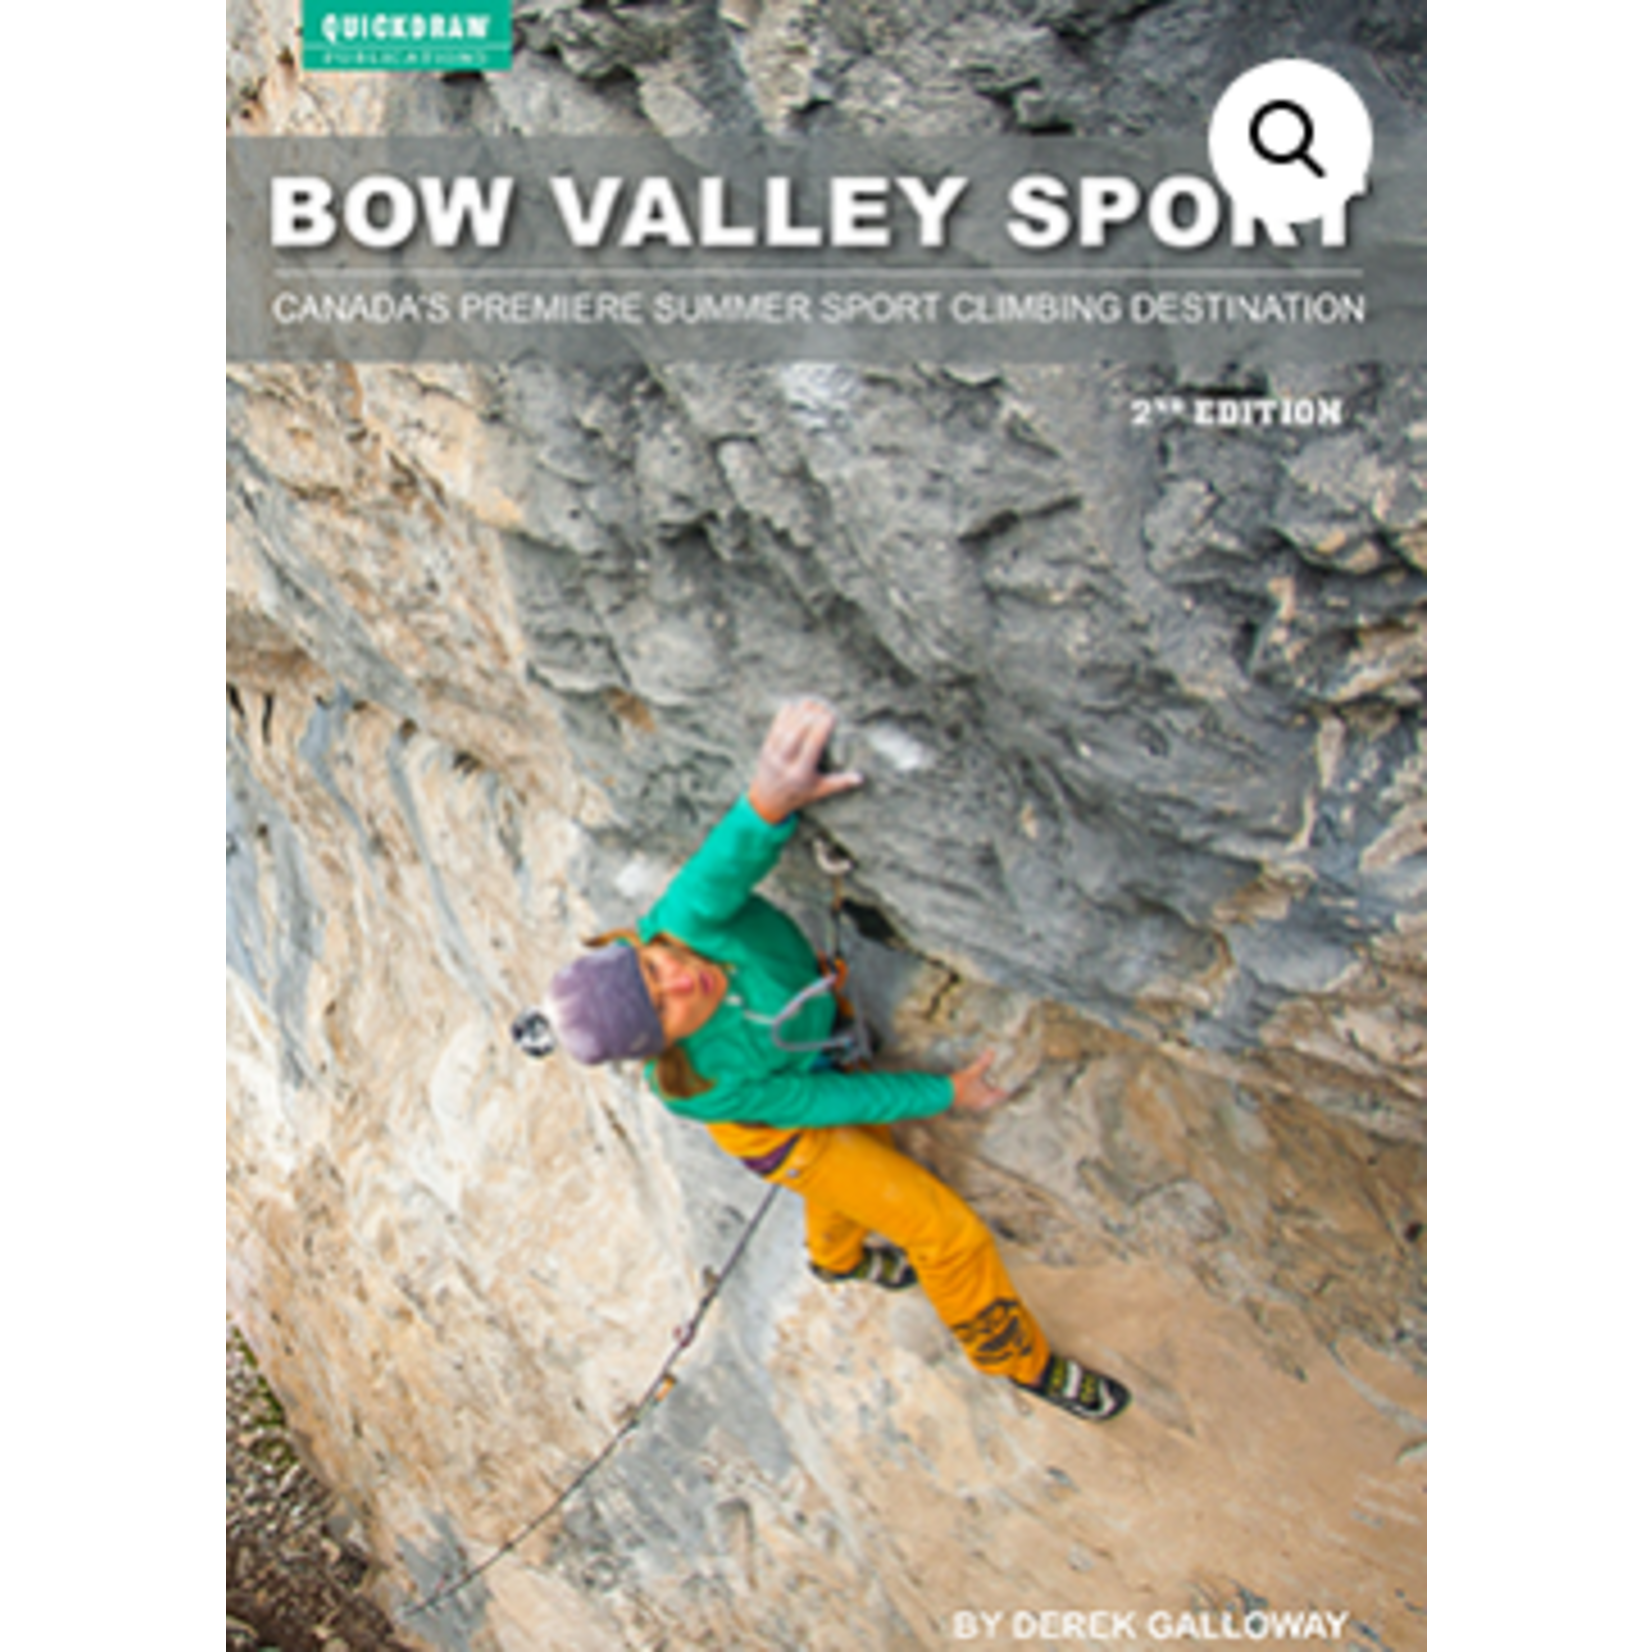 Bow Valley Sports